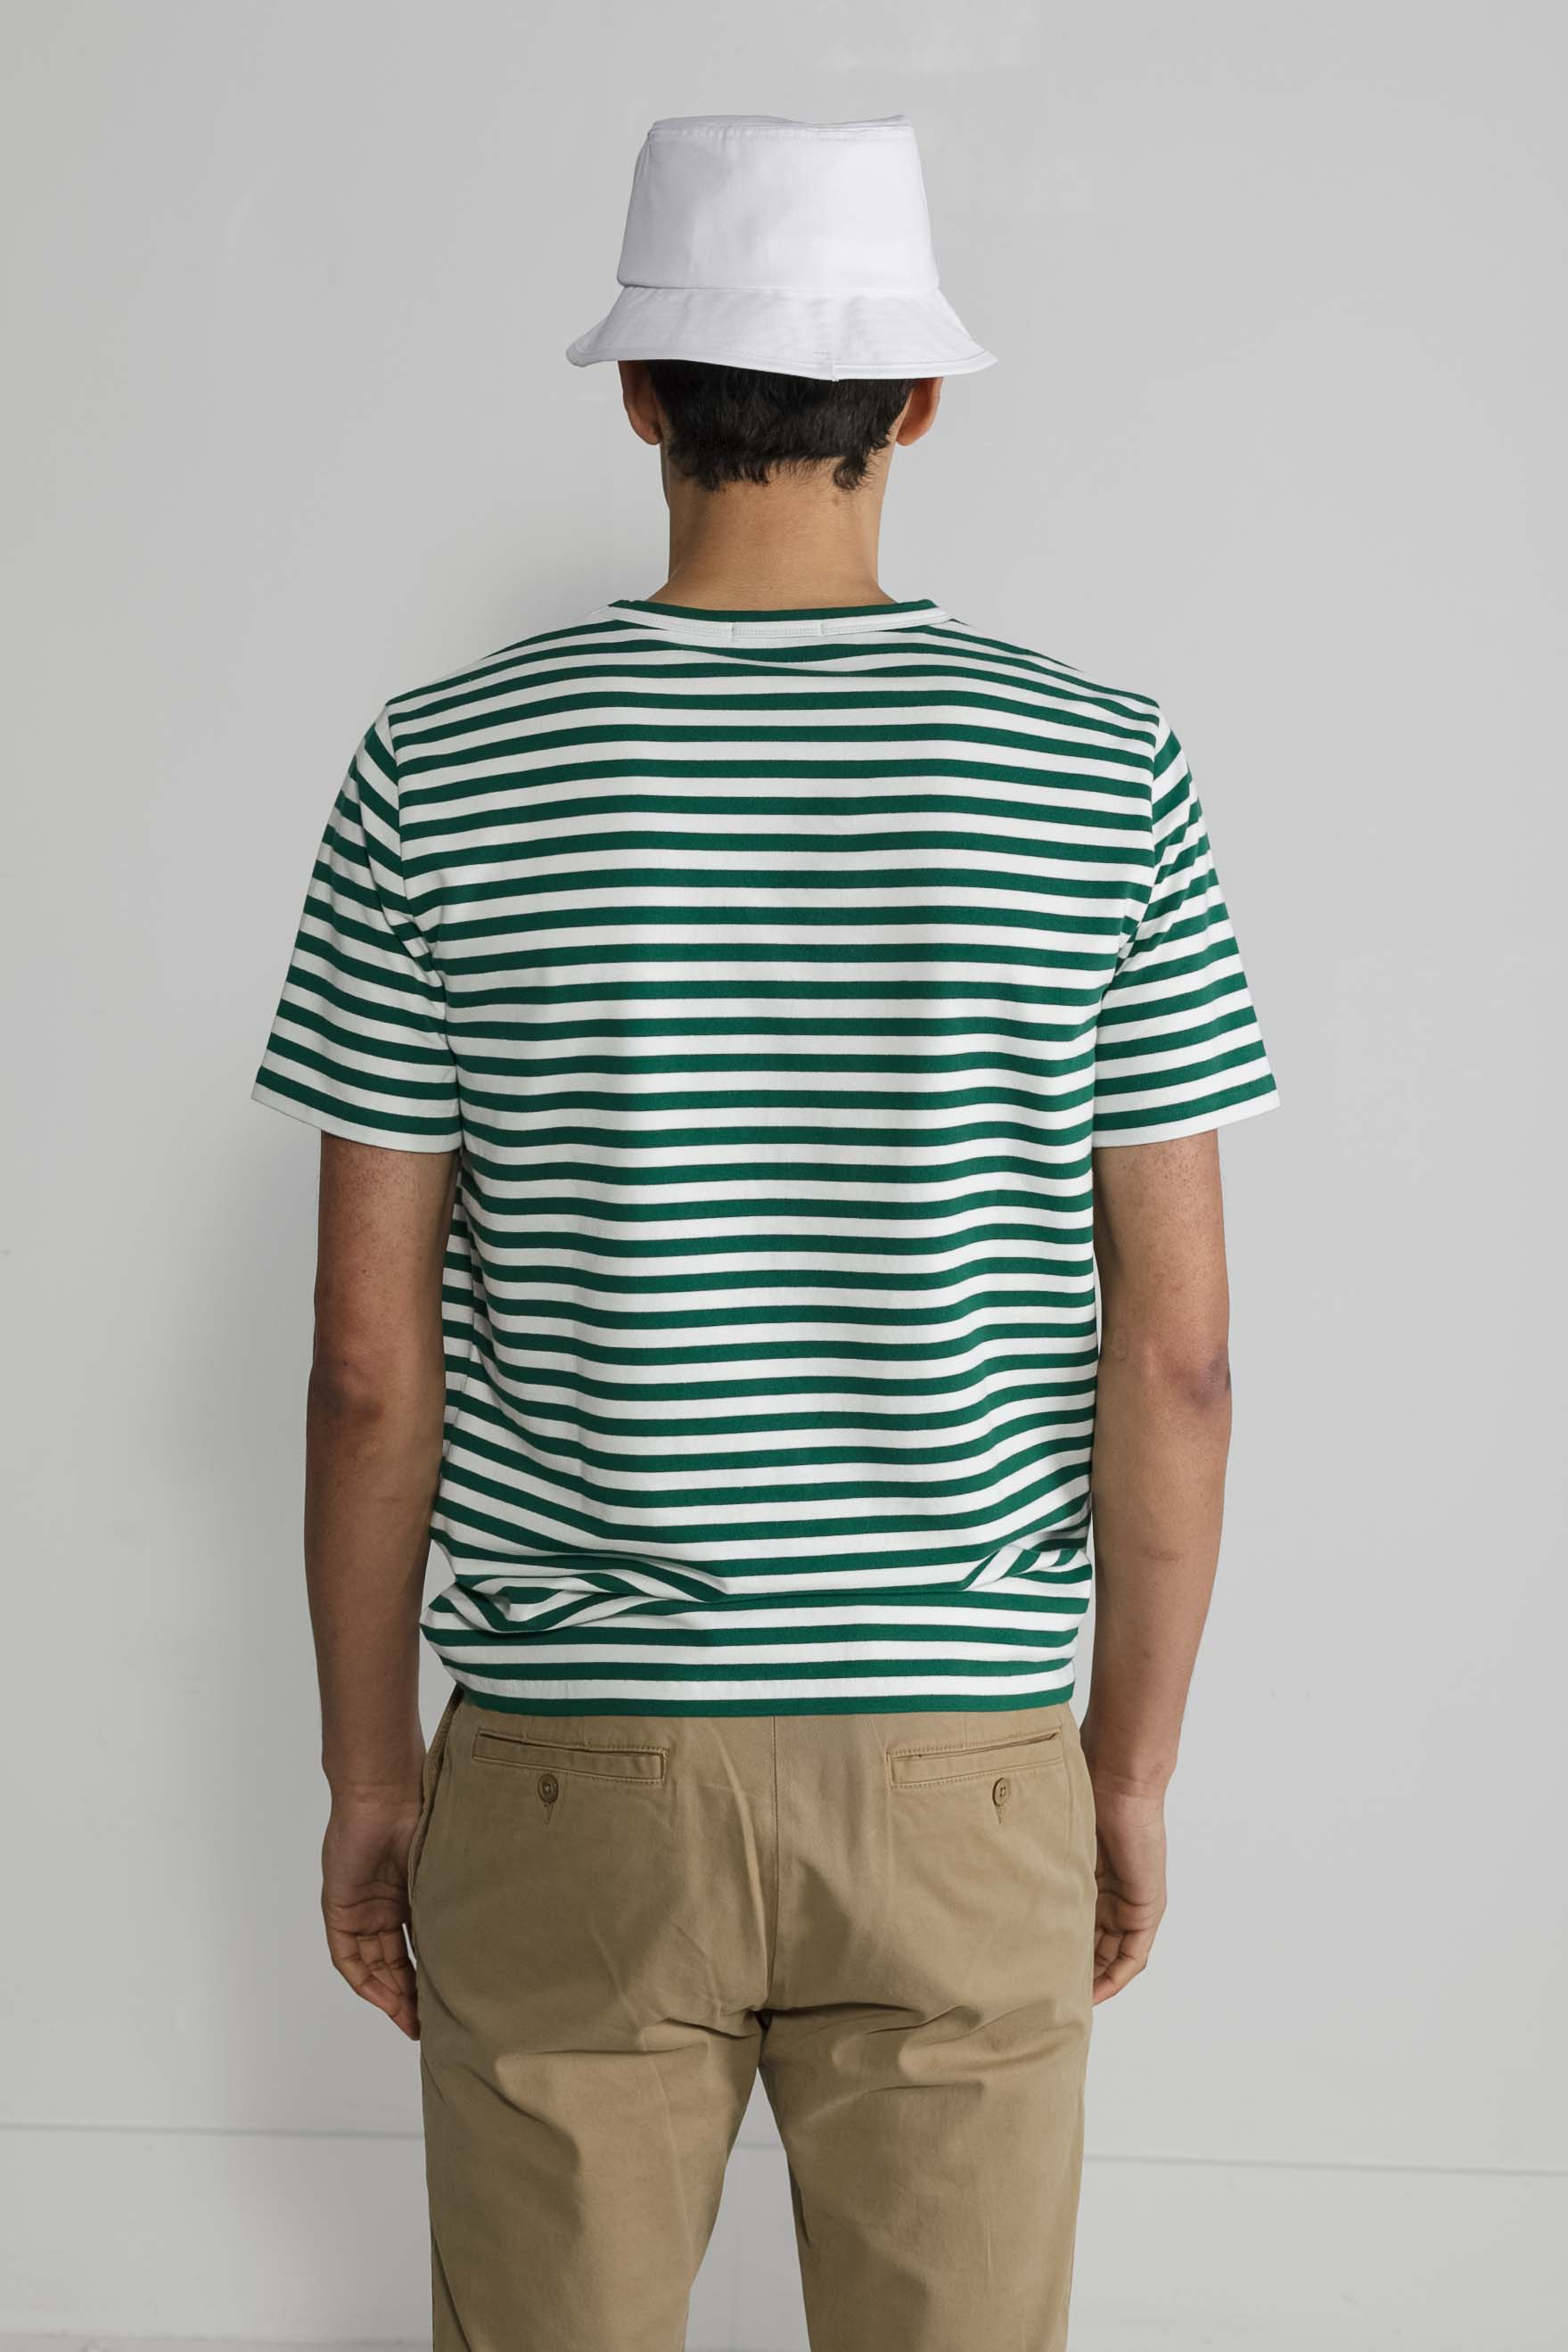 Marine Stripe Crew in White and Green 002